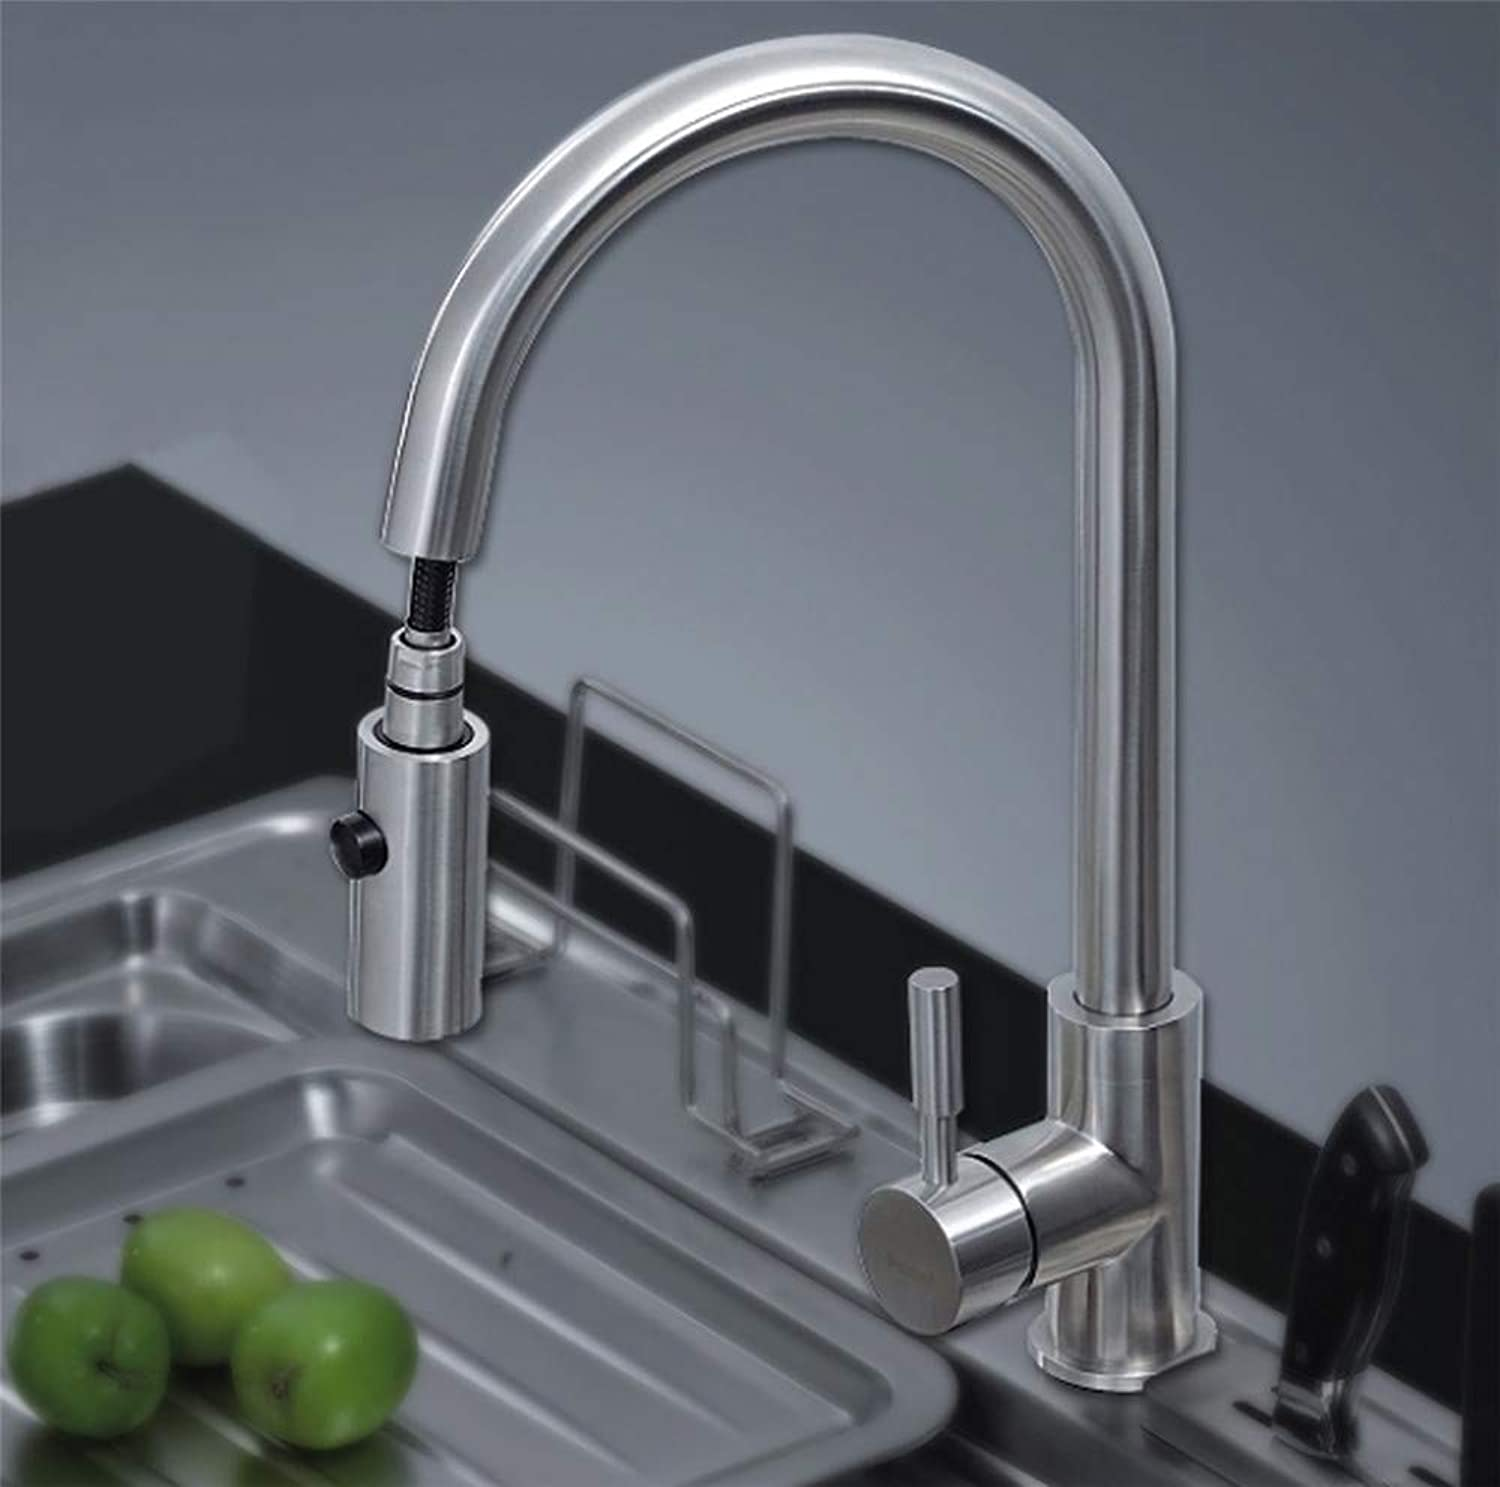 Oudan 304 Stainless Steel Wire Drawing Cold Water Kitchen Faucet Lavatory Pull-Bis Sink Faucet Joint (color   -, Size   -)